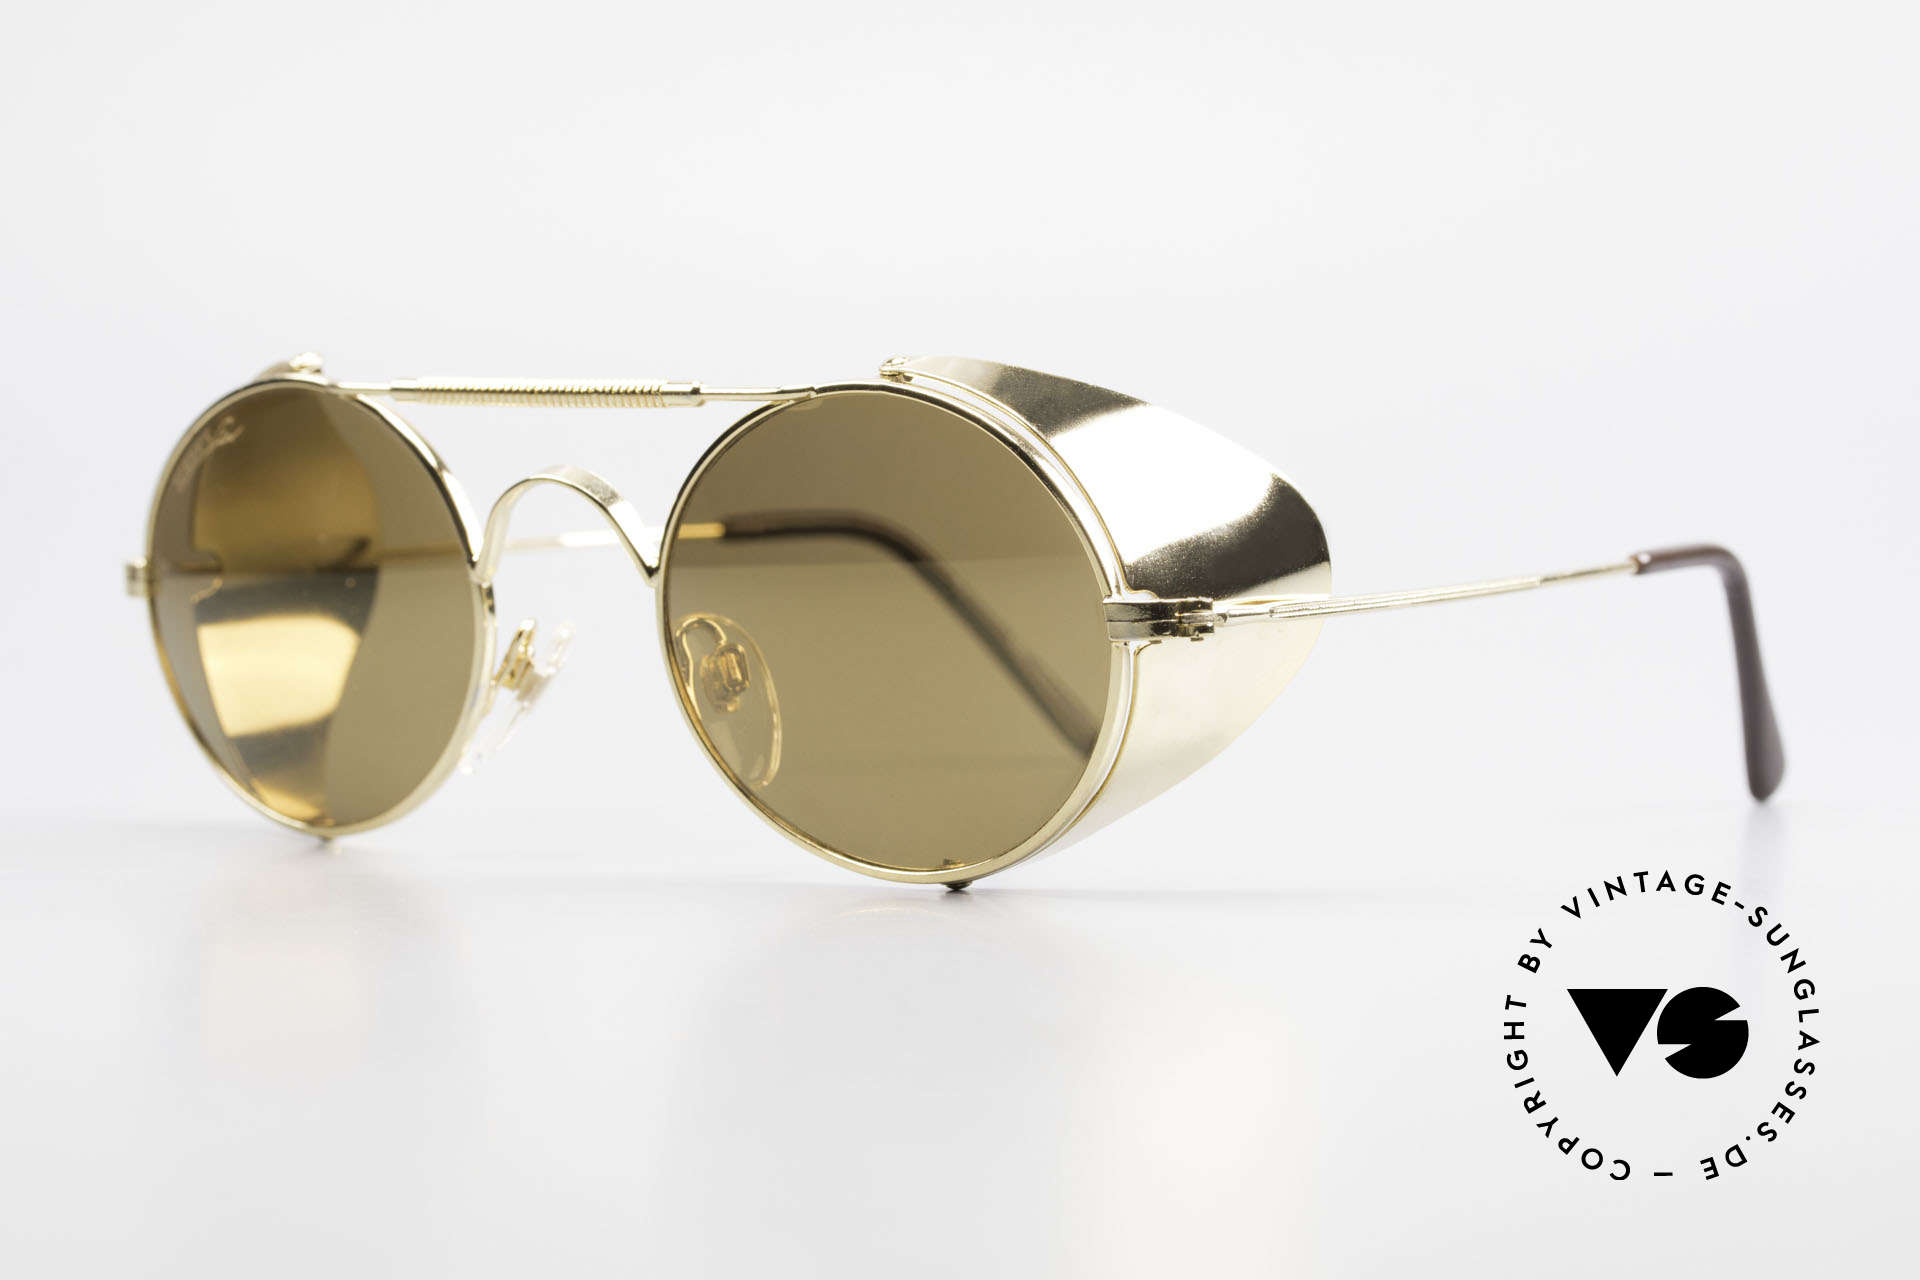 Serious Fun Frogman Steampunk Sunglasses Gold, gold mirrored lenses for extreme weather-conditions, Made for Men and Women